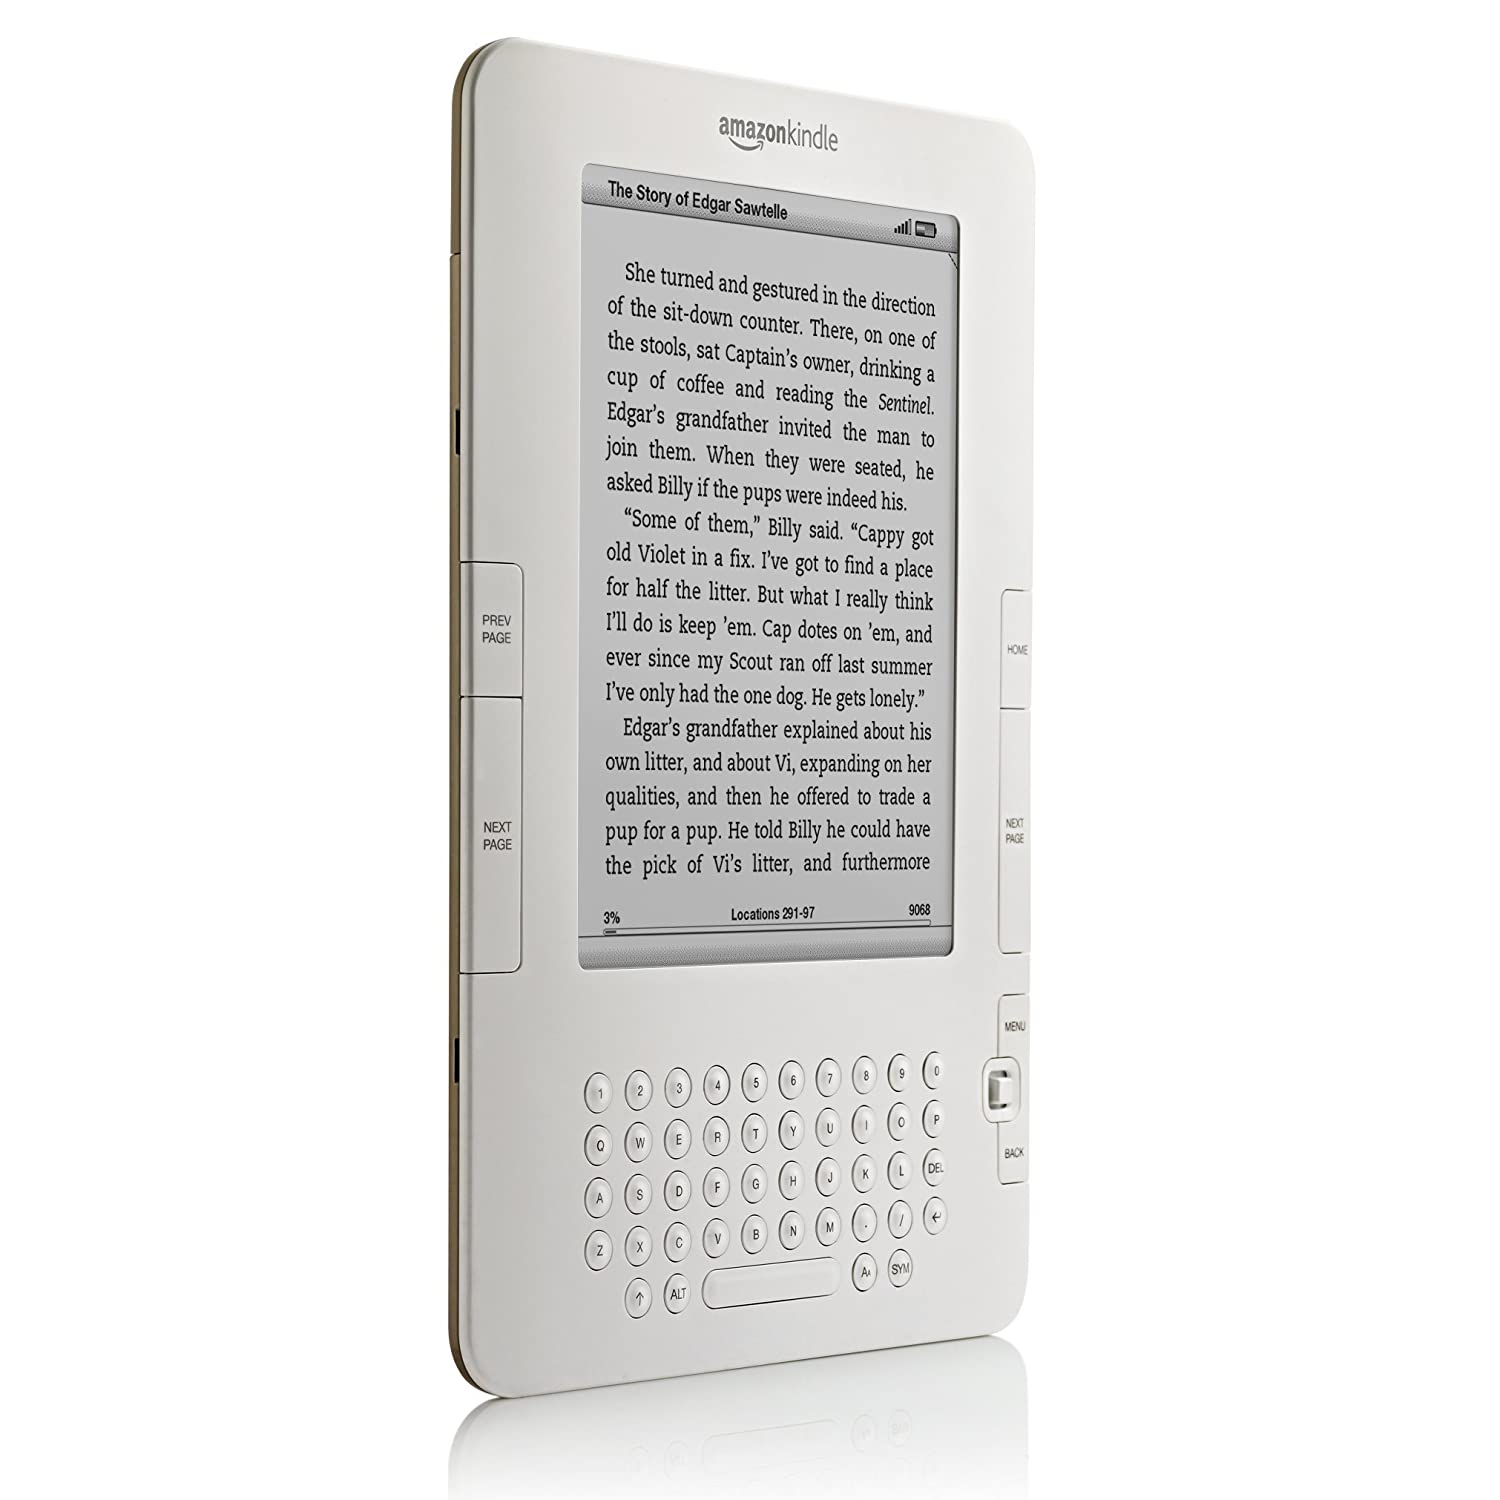 Amazon: Kindle Wireless Reading Device, Free 3g, 6